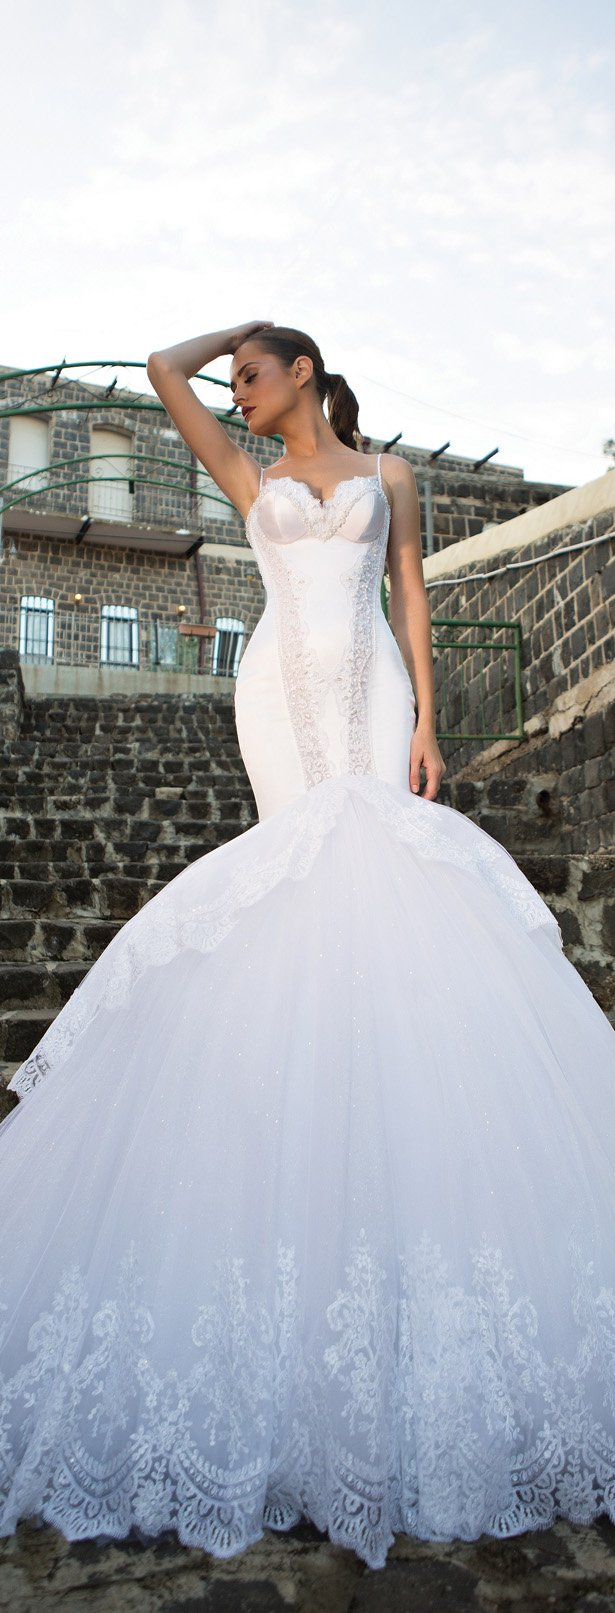 shabiisrael-2015-wedding-dresses Gorgeous Haute Couture 2015 Wedding Dresses By Shabi & Israel Gorgeous Haute Couture 2015 Wedding Dresses By Shabi & Israel shabiisrael 2015 wedding dresses5